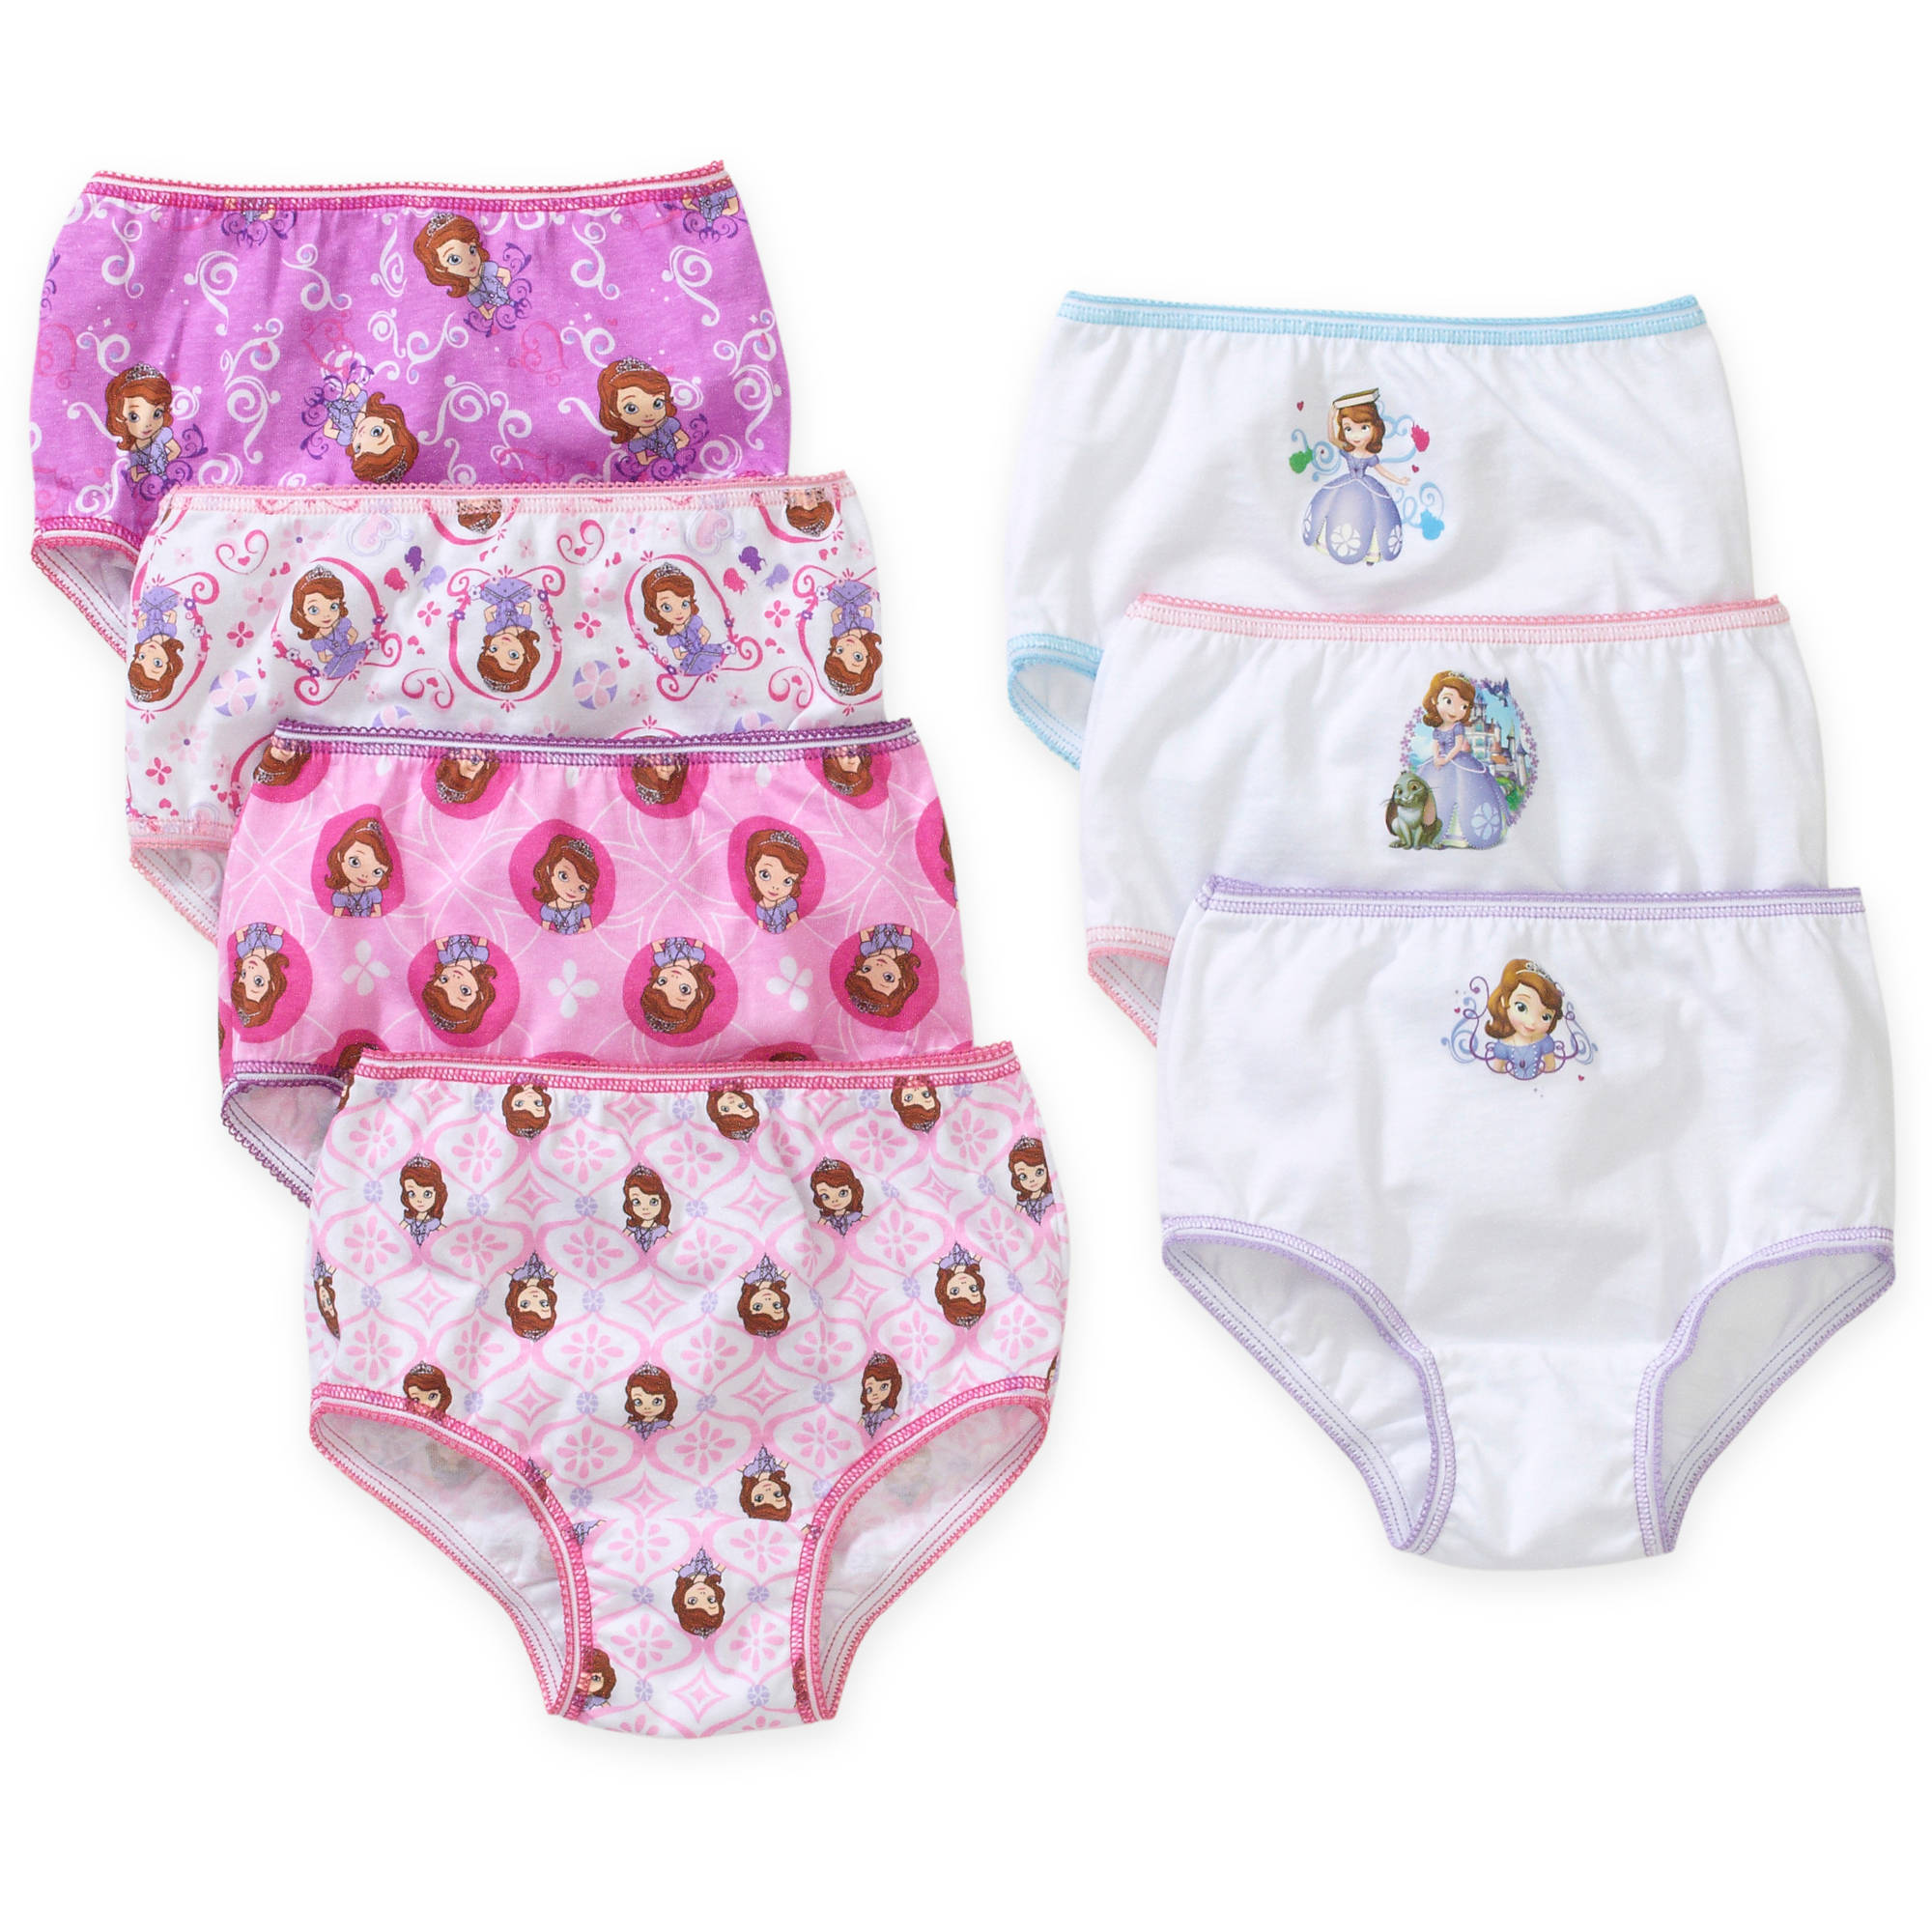 Sofia the First Toddler Girls Underwear, 7 Pack